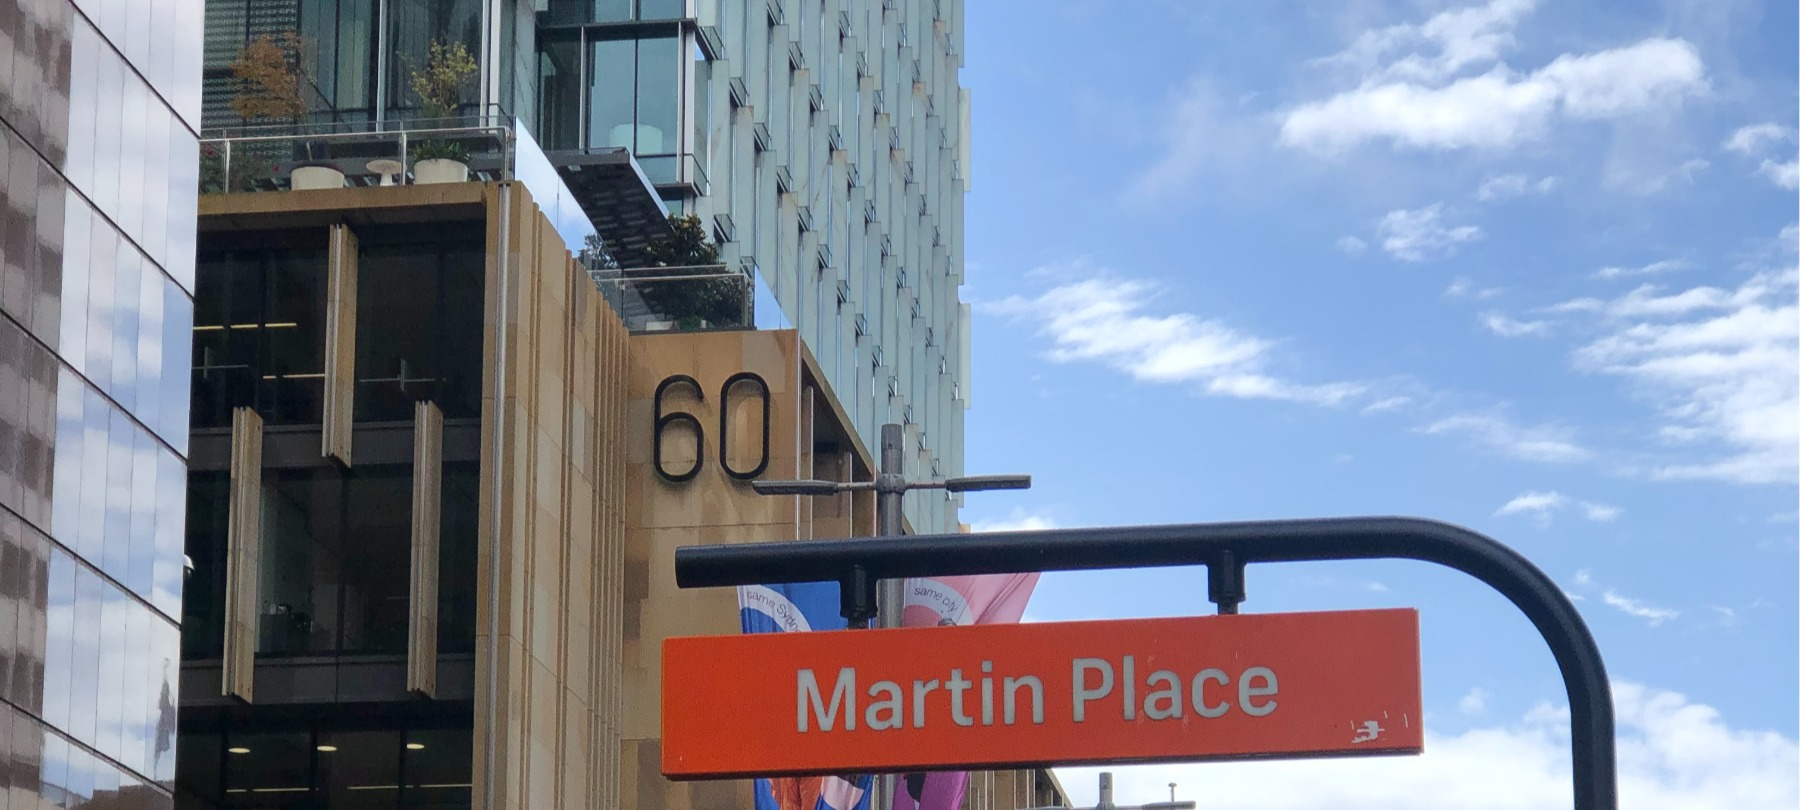 60 martin place street view